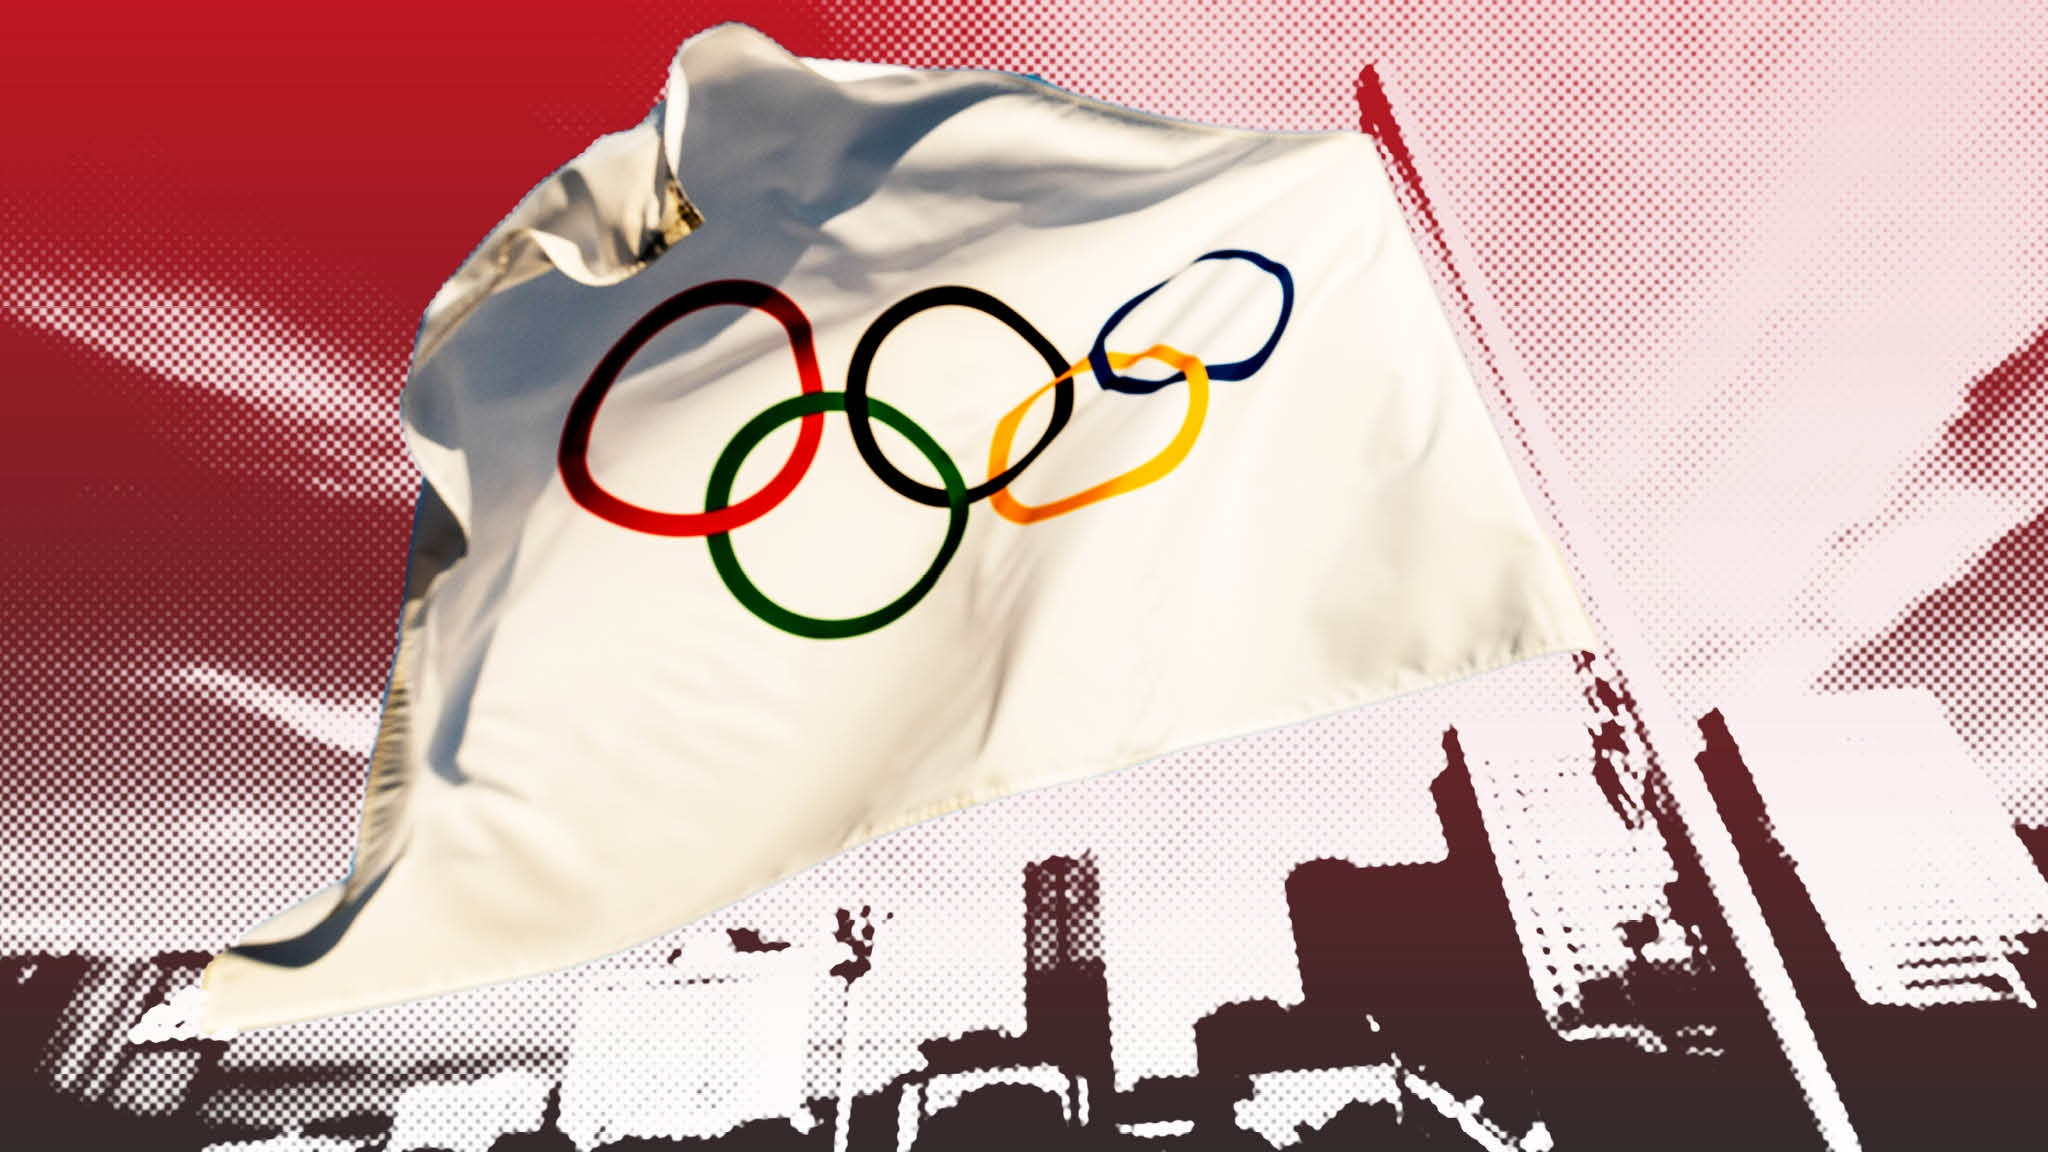 ft.com - Murad Ahmed and Sara Germano in Tokyo - Tokyo Olympics: 'There is no blueprint' for staging Games in a pandemic